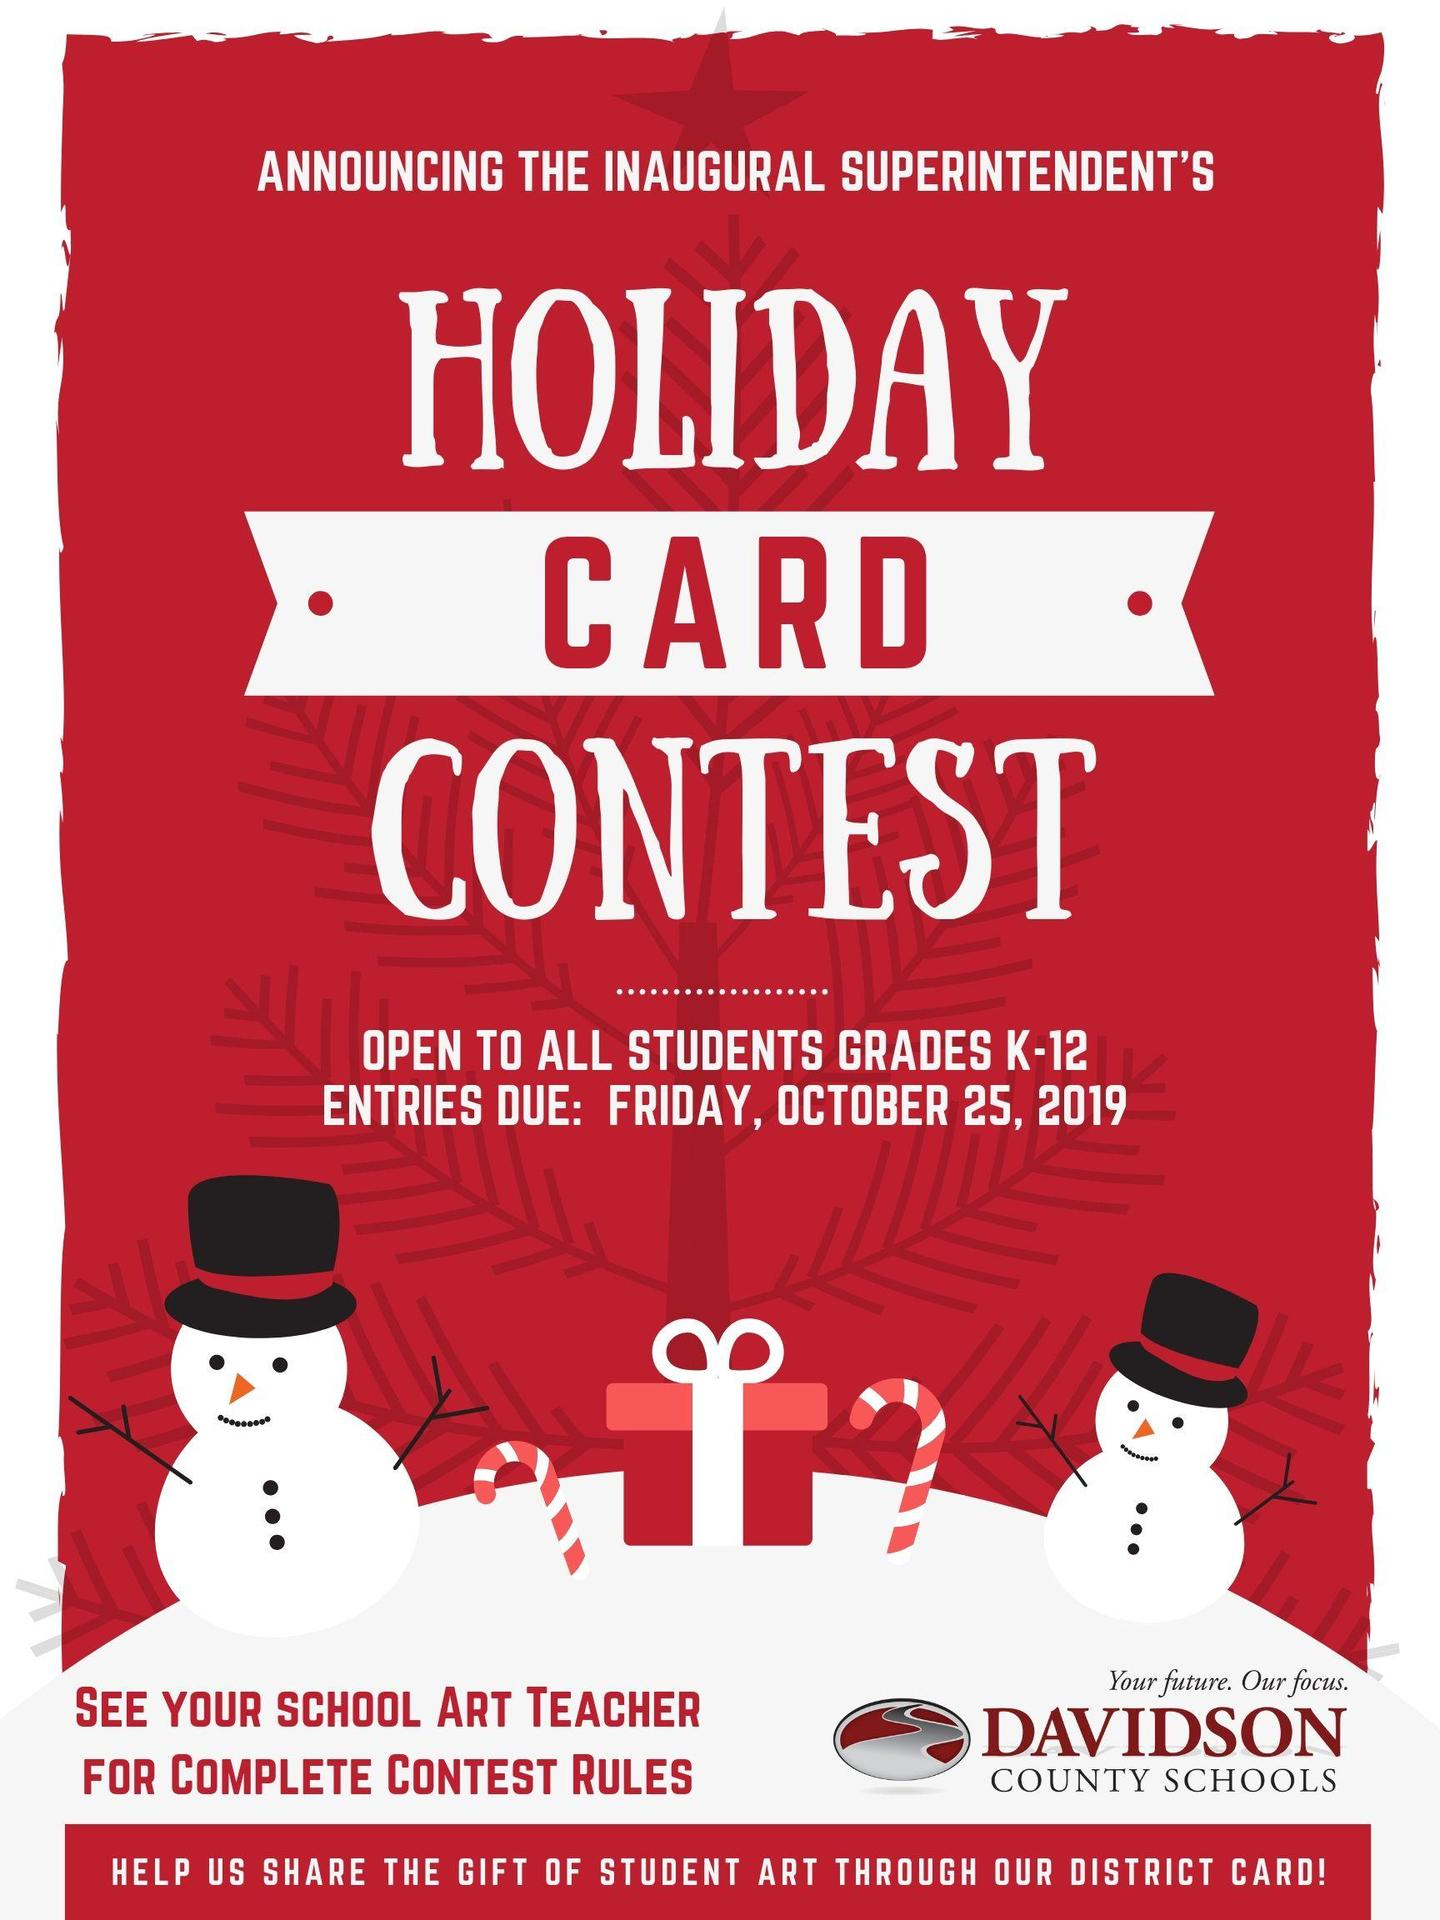 Flyer announcing the inaugural Superintendent's Holiday Card Contest.  Open to all students grades K-12.  Entries are due by Friday, October 25, 2019.  See your school art teacher for complete contest rules.